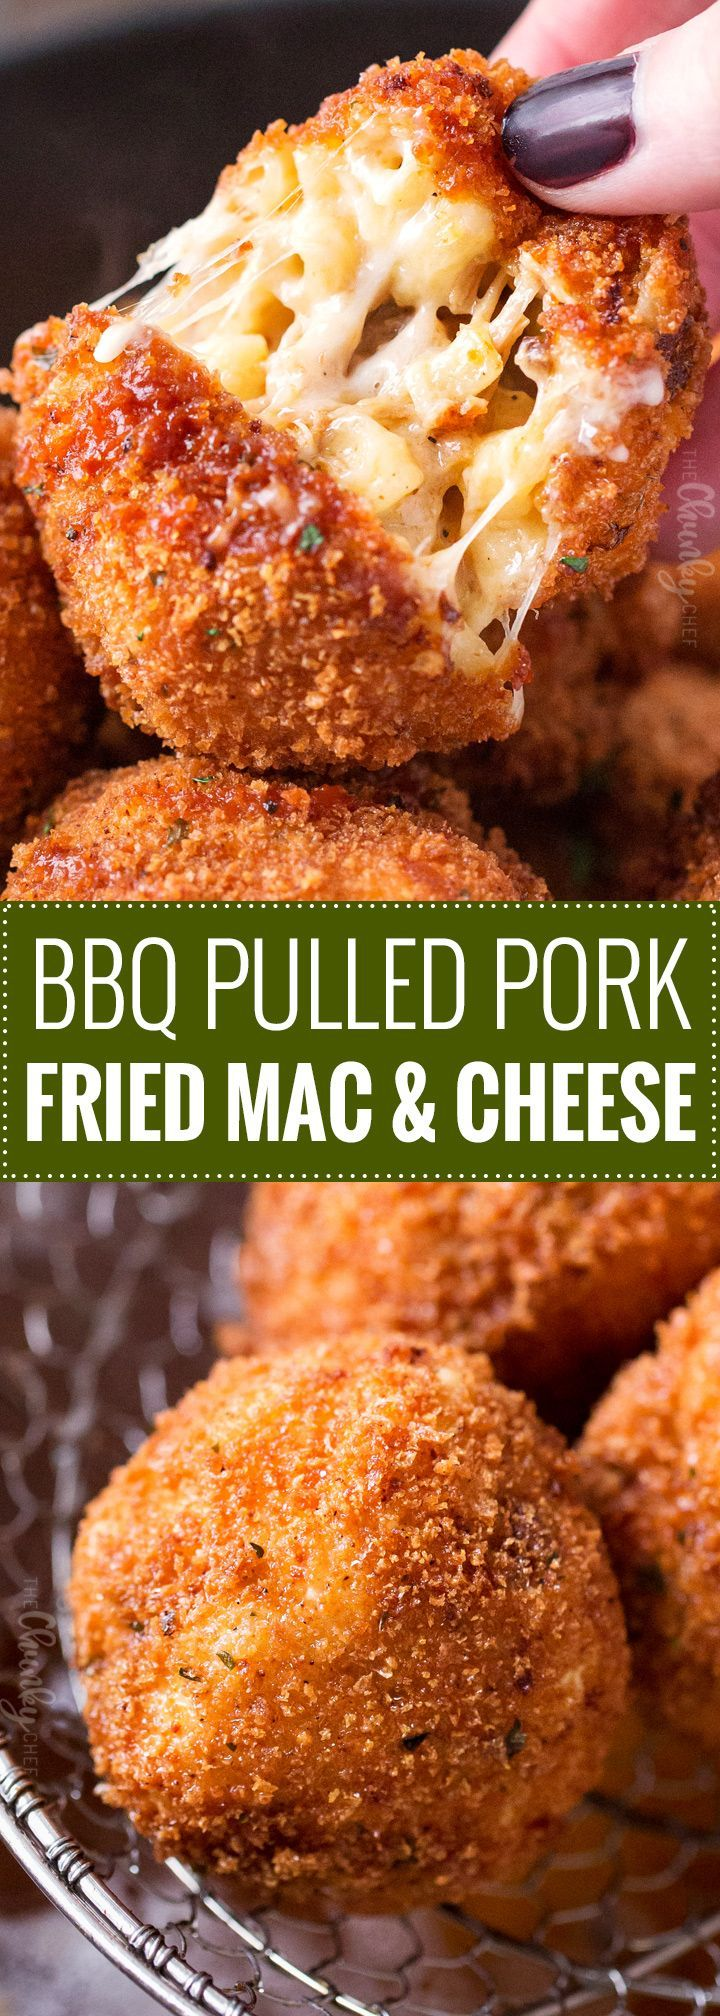 BBQ Pulled Pork Fried Mac and Cheese Bites | 5 cheese homemadeMac and cheese, slow cooker bbq pulled pork, combined and breaded in crispy spiced panko and fried until perfectly golden! | https://thechunkychef.com | #appetizer #gameday #tailgating #friedmacandcheese #pulledpork